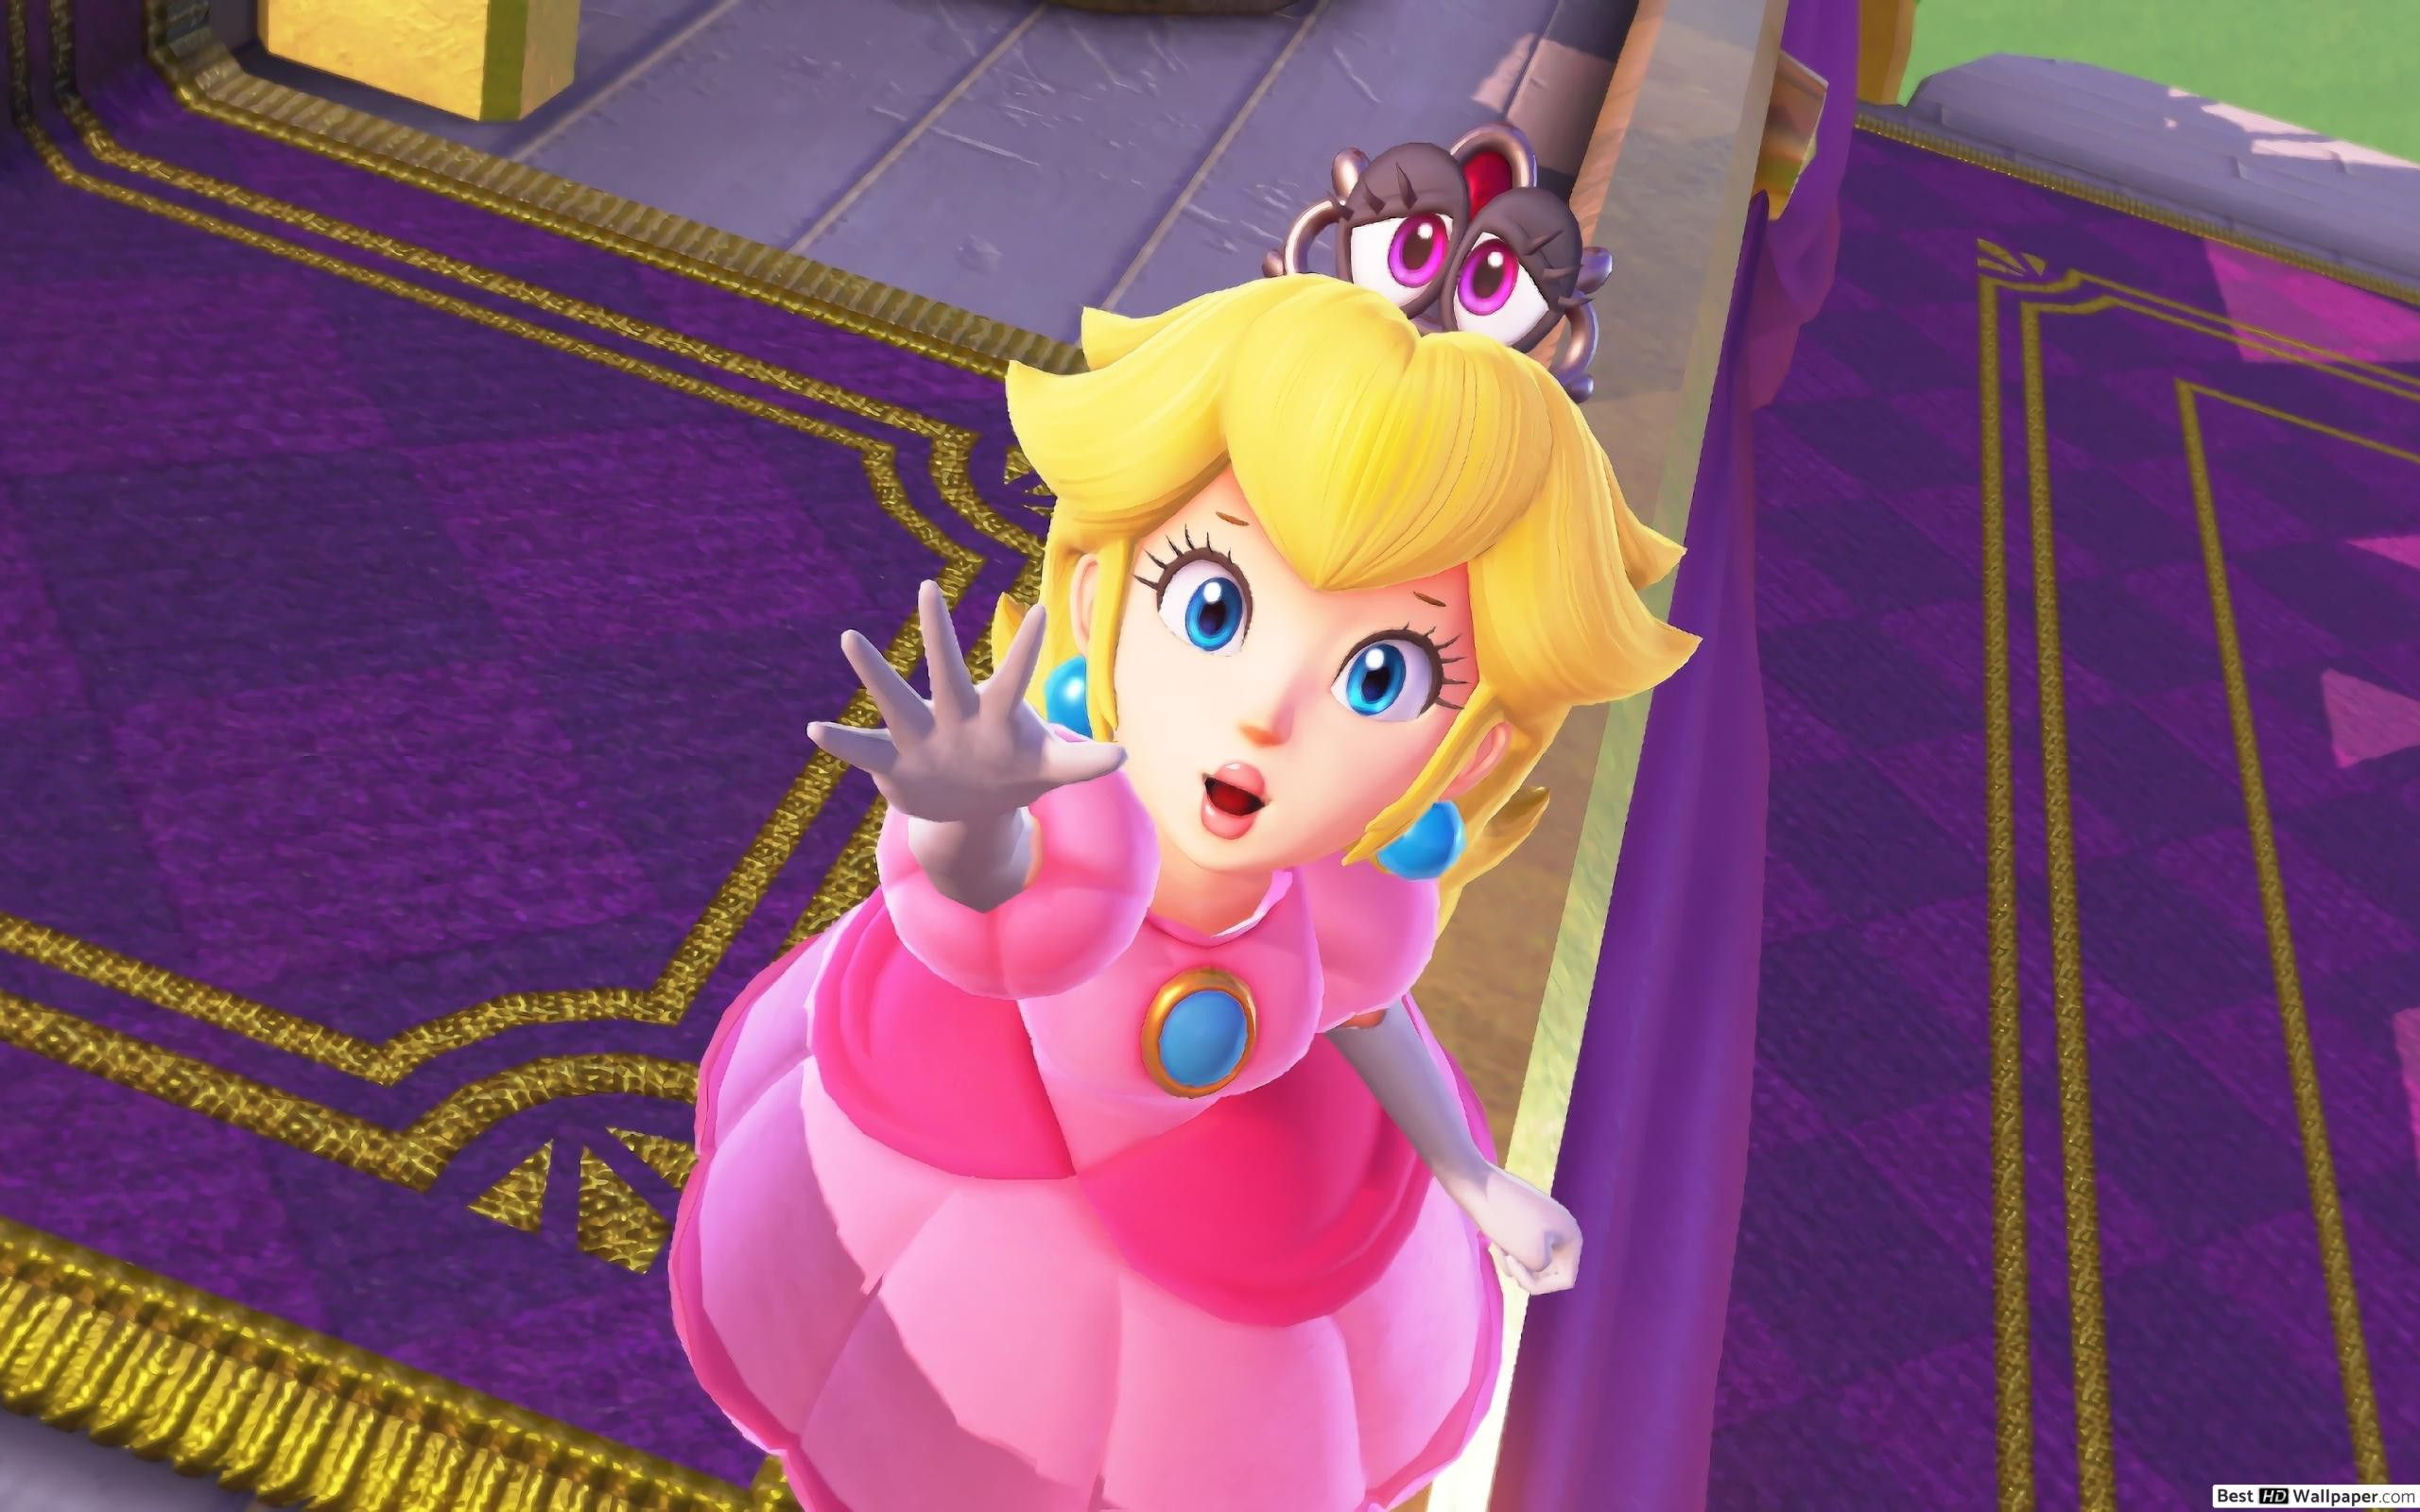 Bowsette Wallpaper Awesome Super Mario Odyssey Princess Peach Wallpaper Princess Peach Peach Wallpaper Peach Mario